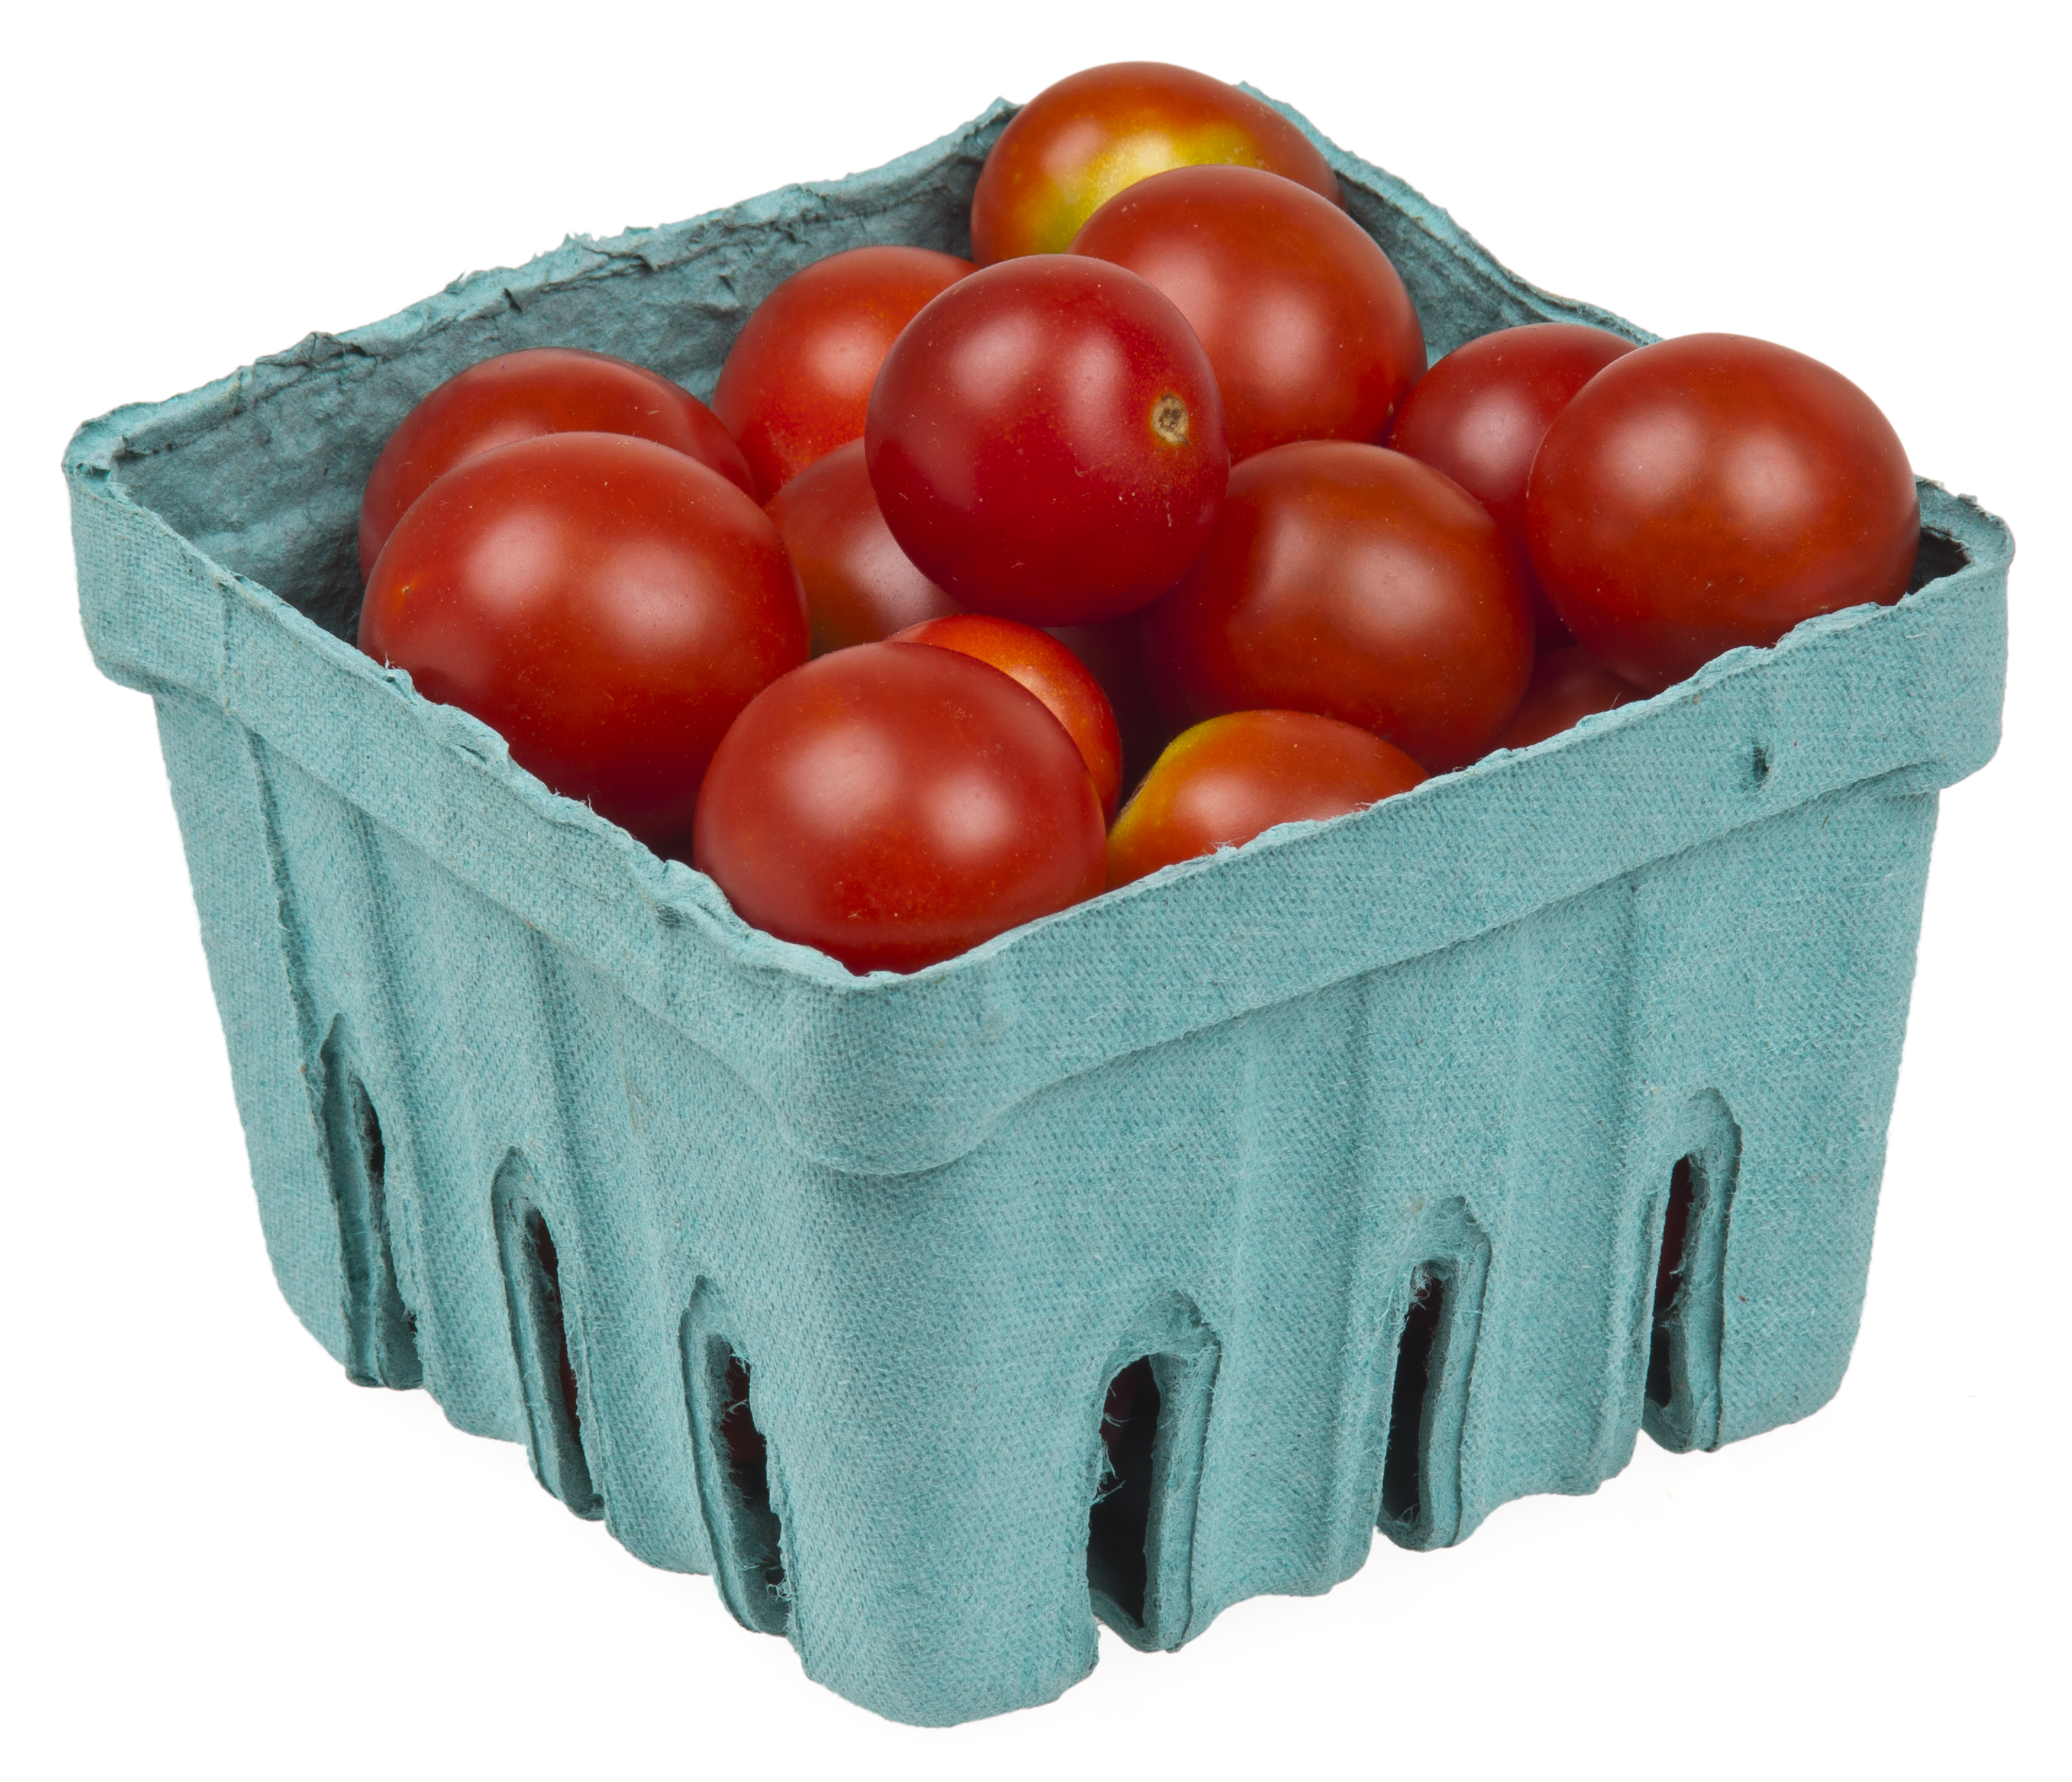 file cherry tomatoes in pack jpg wikimedia commons free clipart online learning free clip art online rolling river rampage